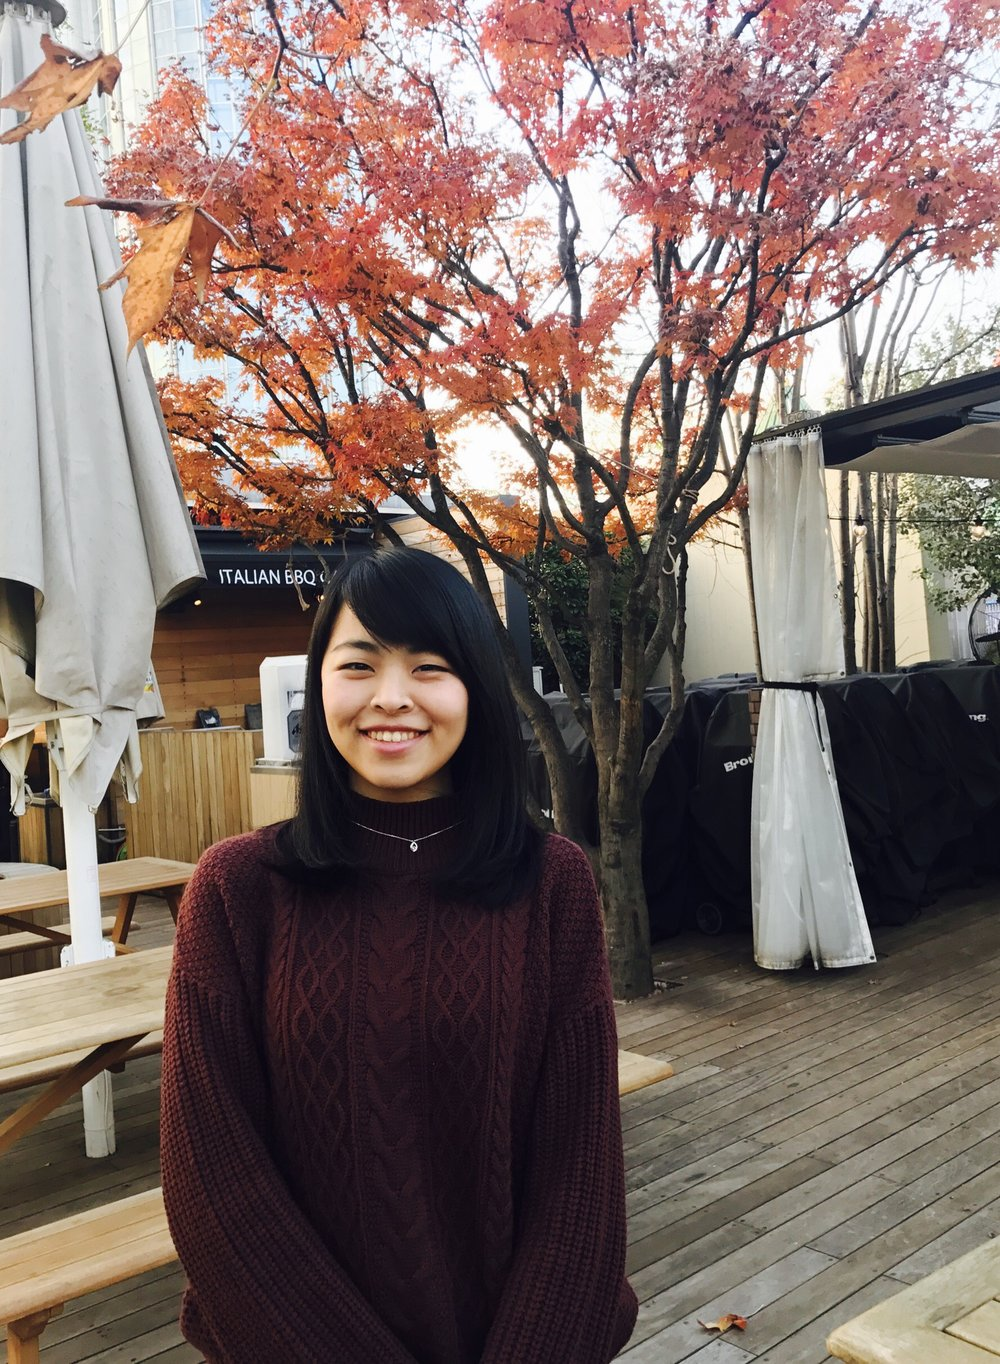 Misaki - From Tokyo, JapanYear: SeniorMajor: Economics, with a focus in Behavioral EconomicsRole at FIUTS: InternHi, I am Misaki. I am a senior student from University of Keio in Japan. I've just started the internship at FIUTS to learn about how to facilitate events and gain leadership skills. I really like to travel and get to know different cultures by making friends from all over the world. I am looking forward to learning about your home country culture!